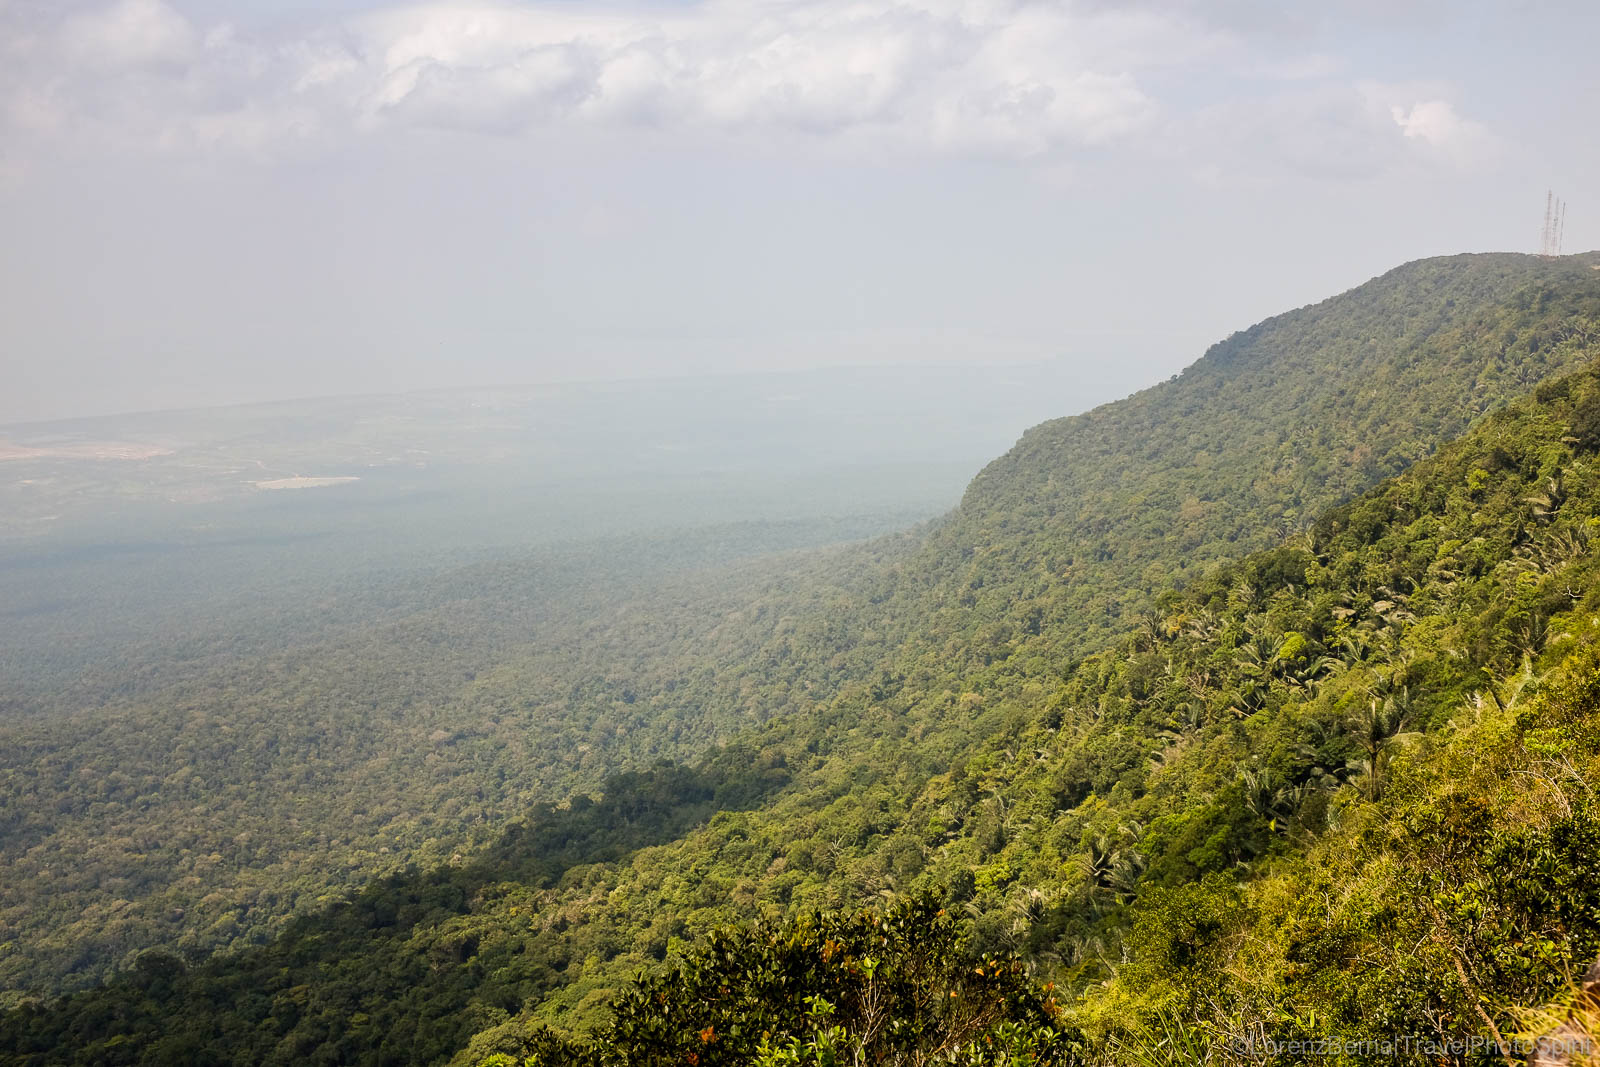 View from the top of the Bokor Mountain on the primary forest, Kampot, Cambodia